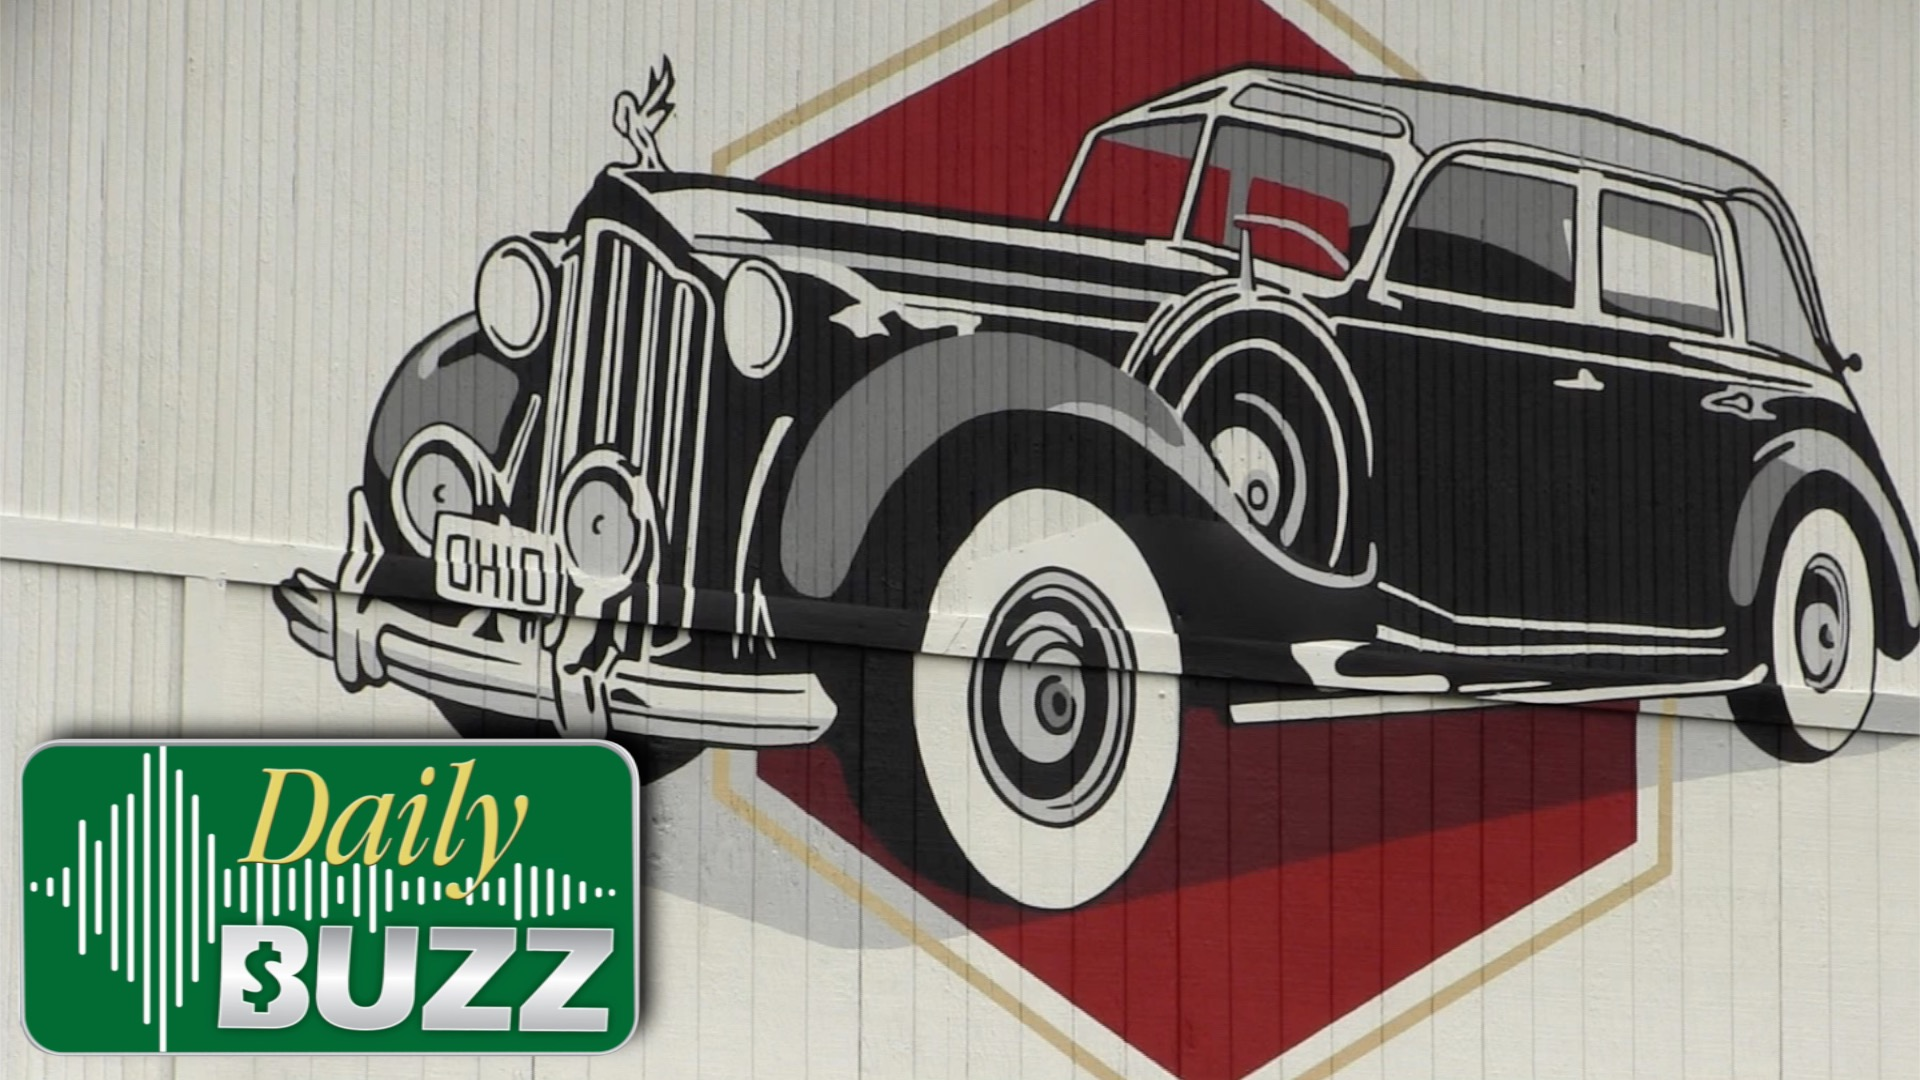 Packard Mural Is a Gateway to History